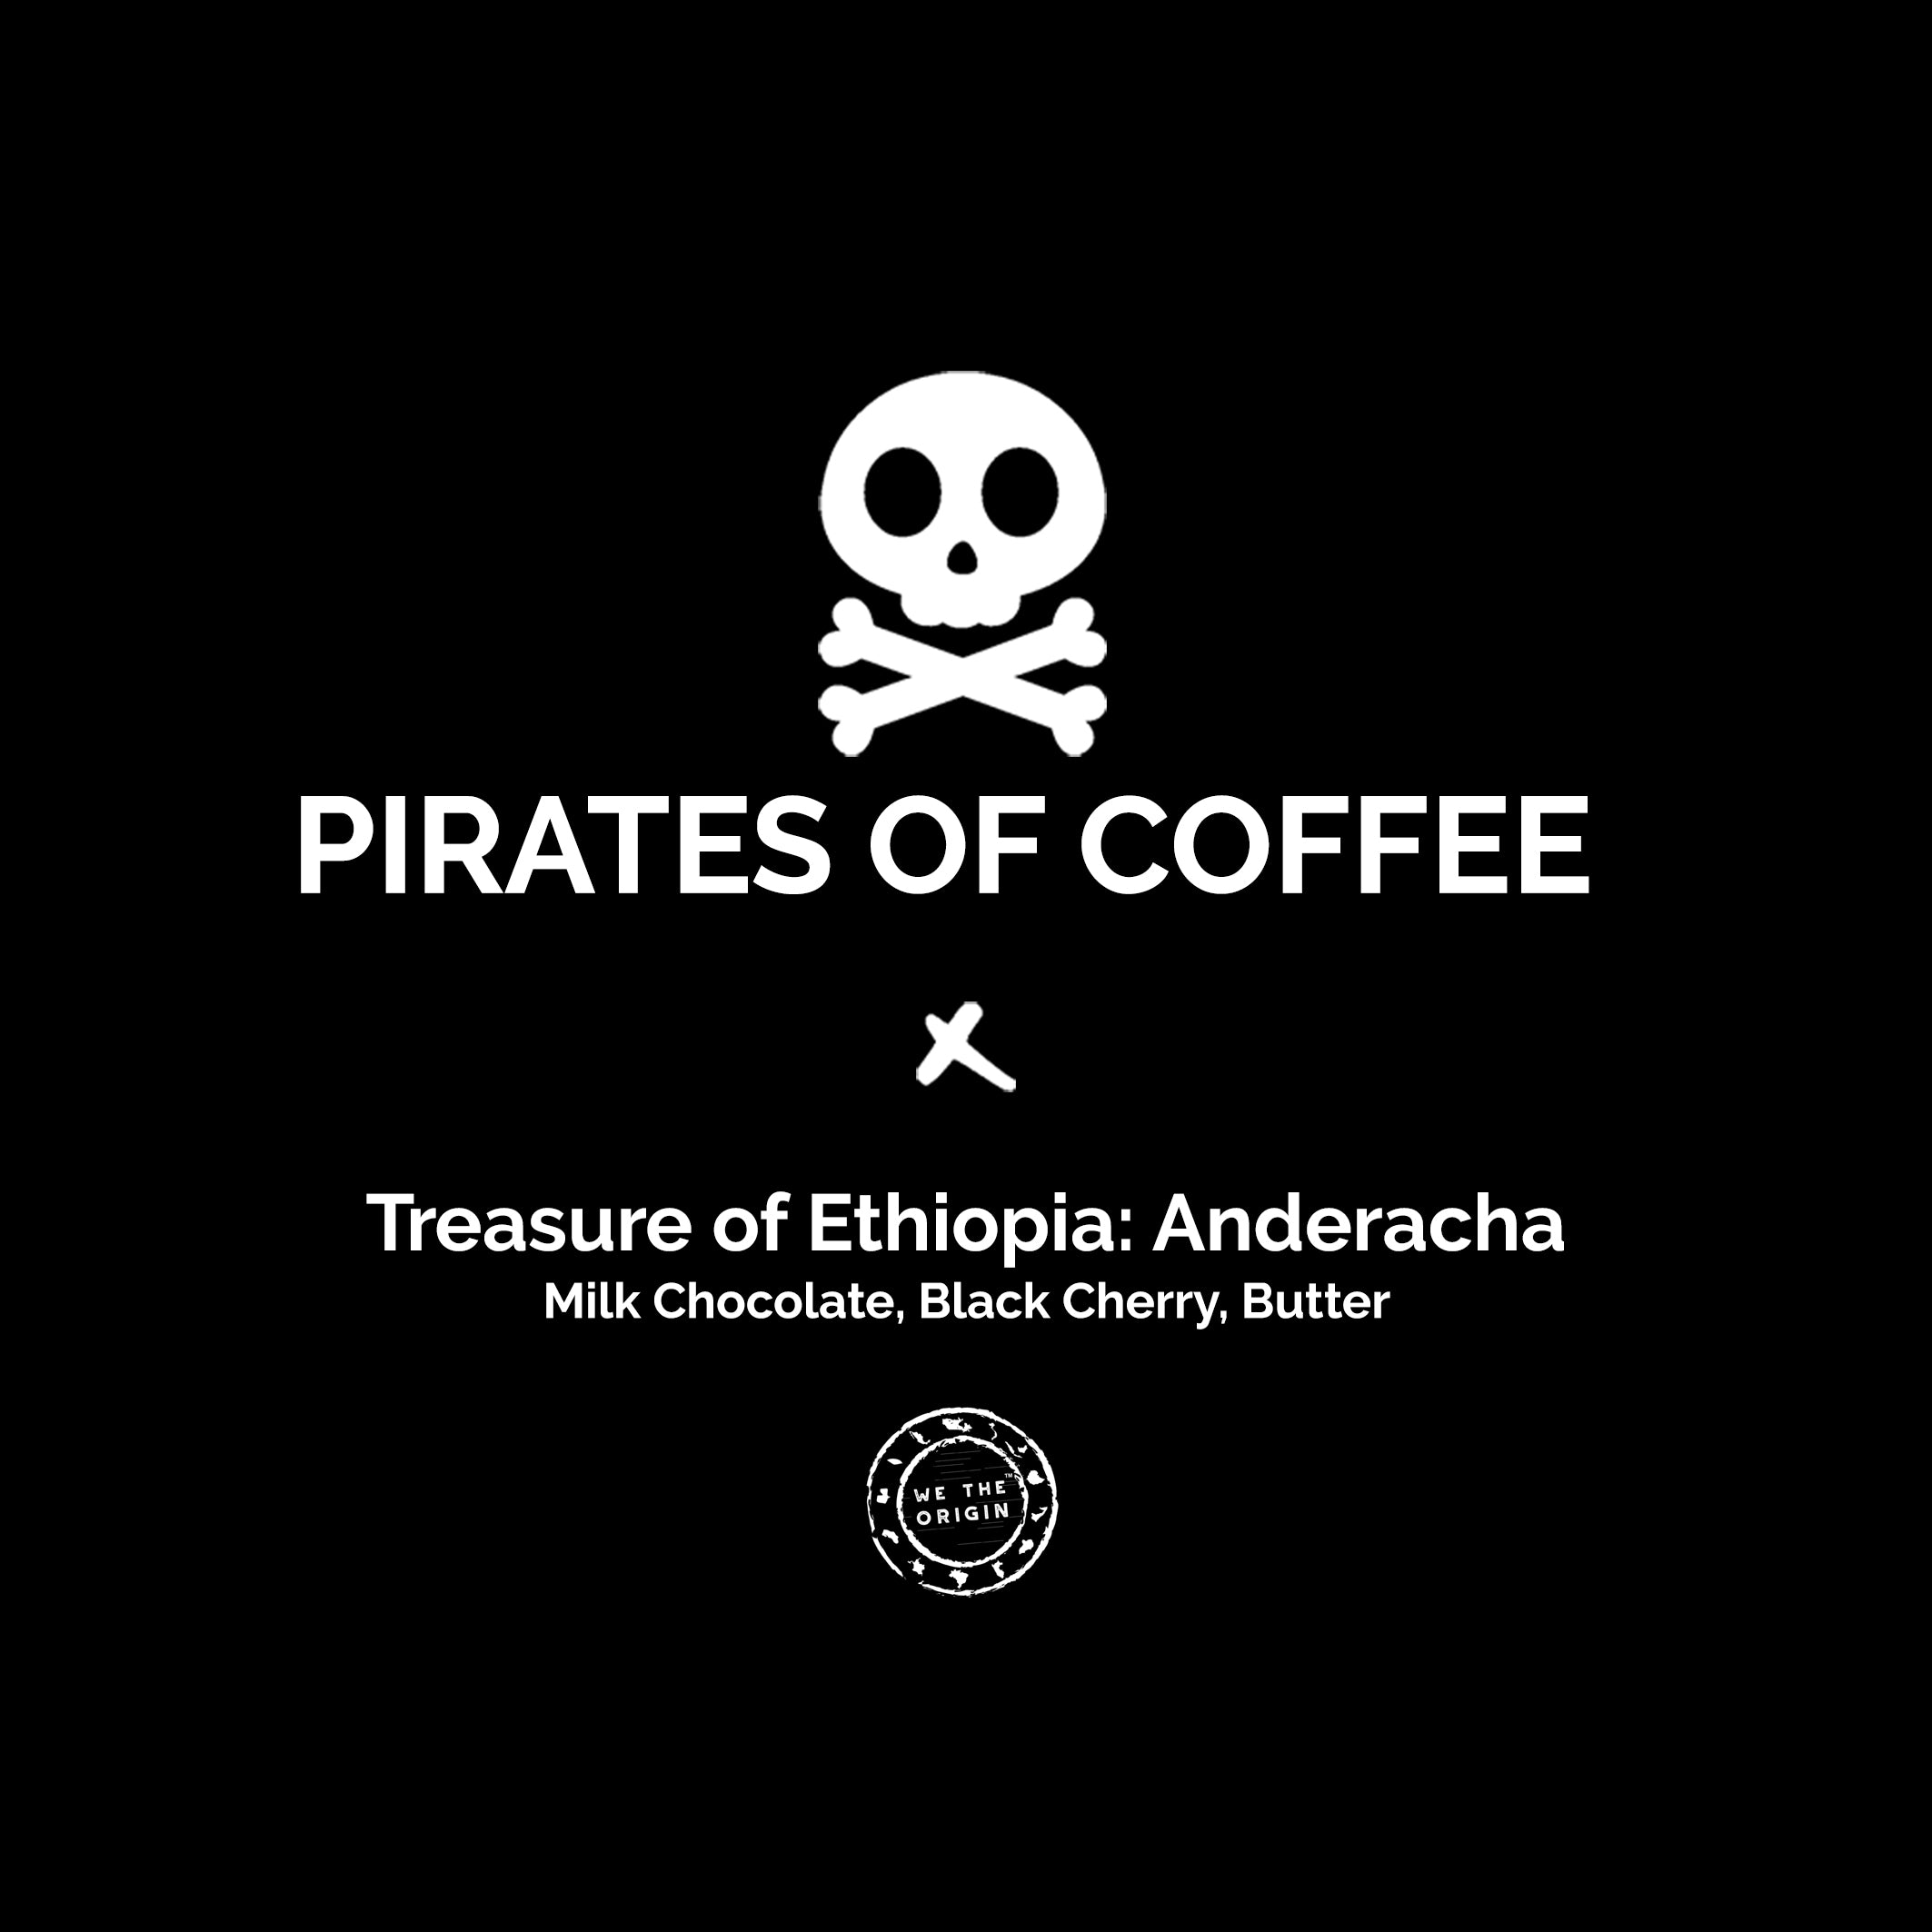 TREASURE OF ETHIOPIA: ANDERACHA